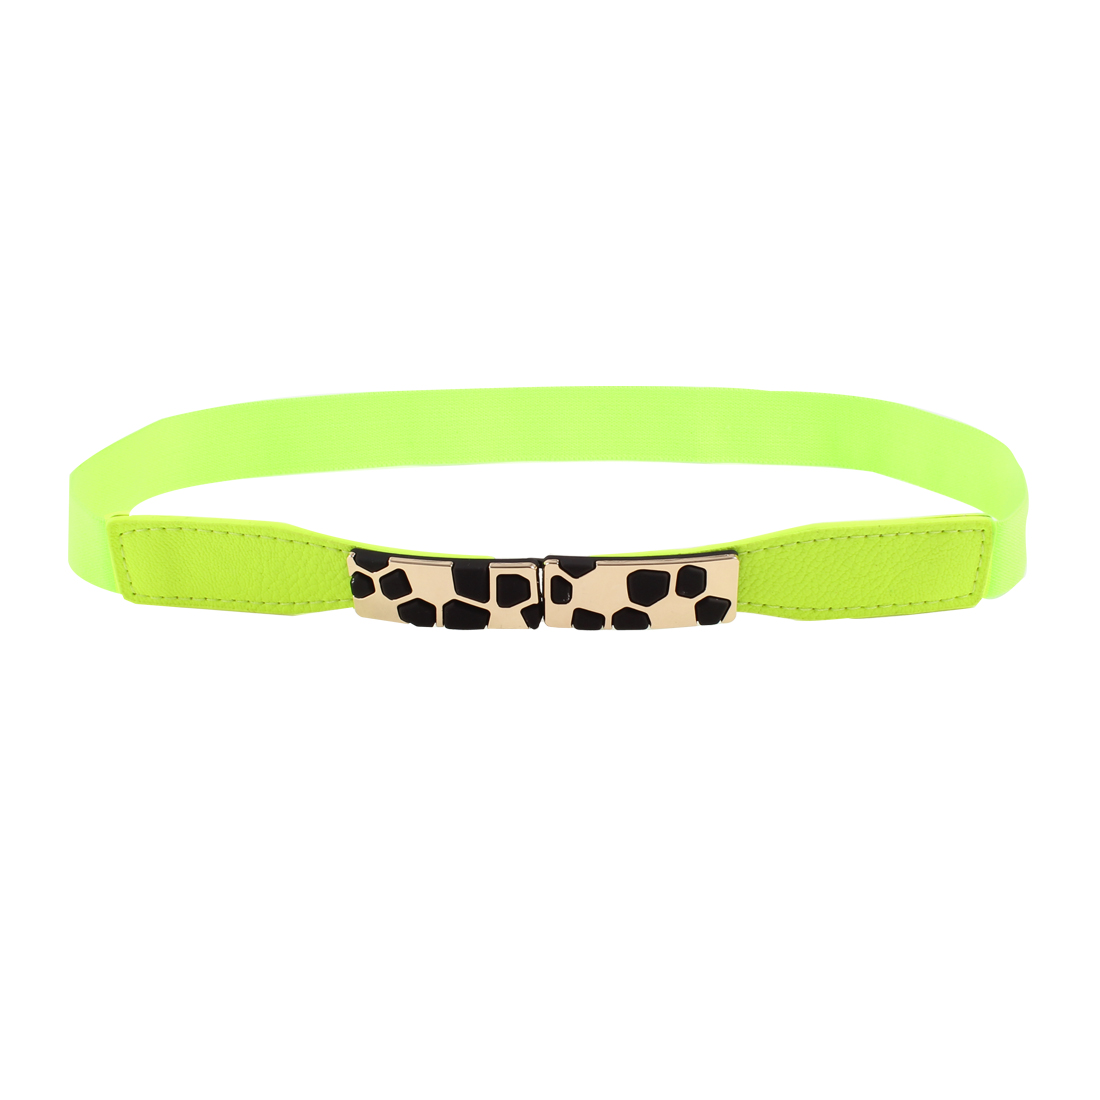 Block Design Metal Interlocking Buckle Stretchy Waist Belt Green for Ladies